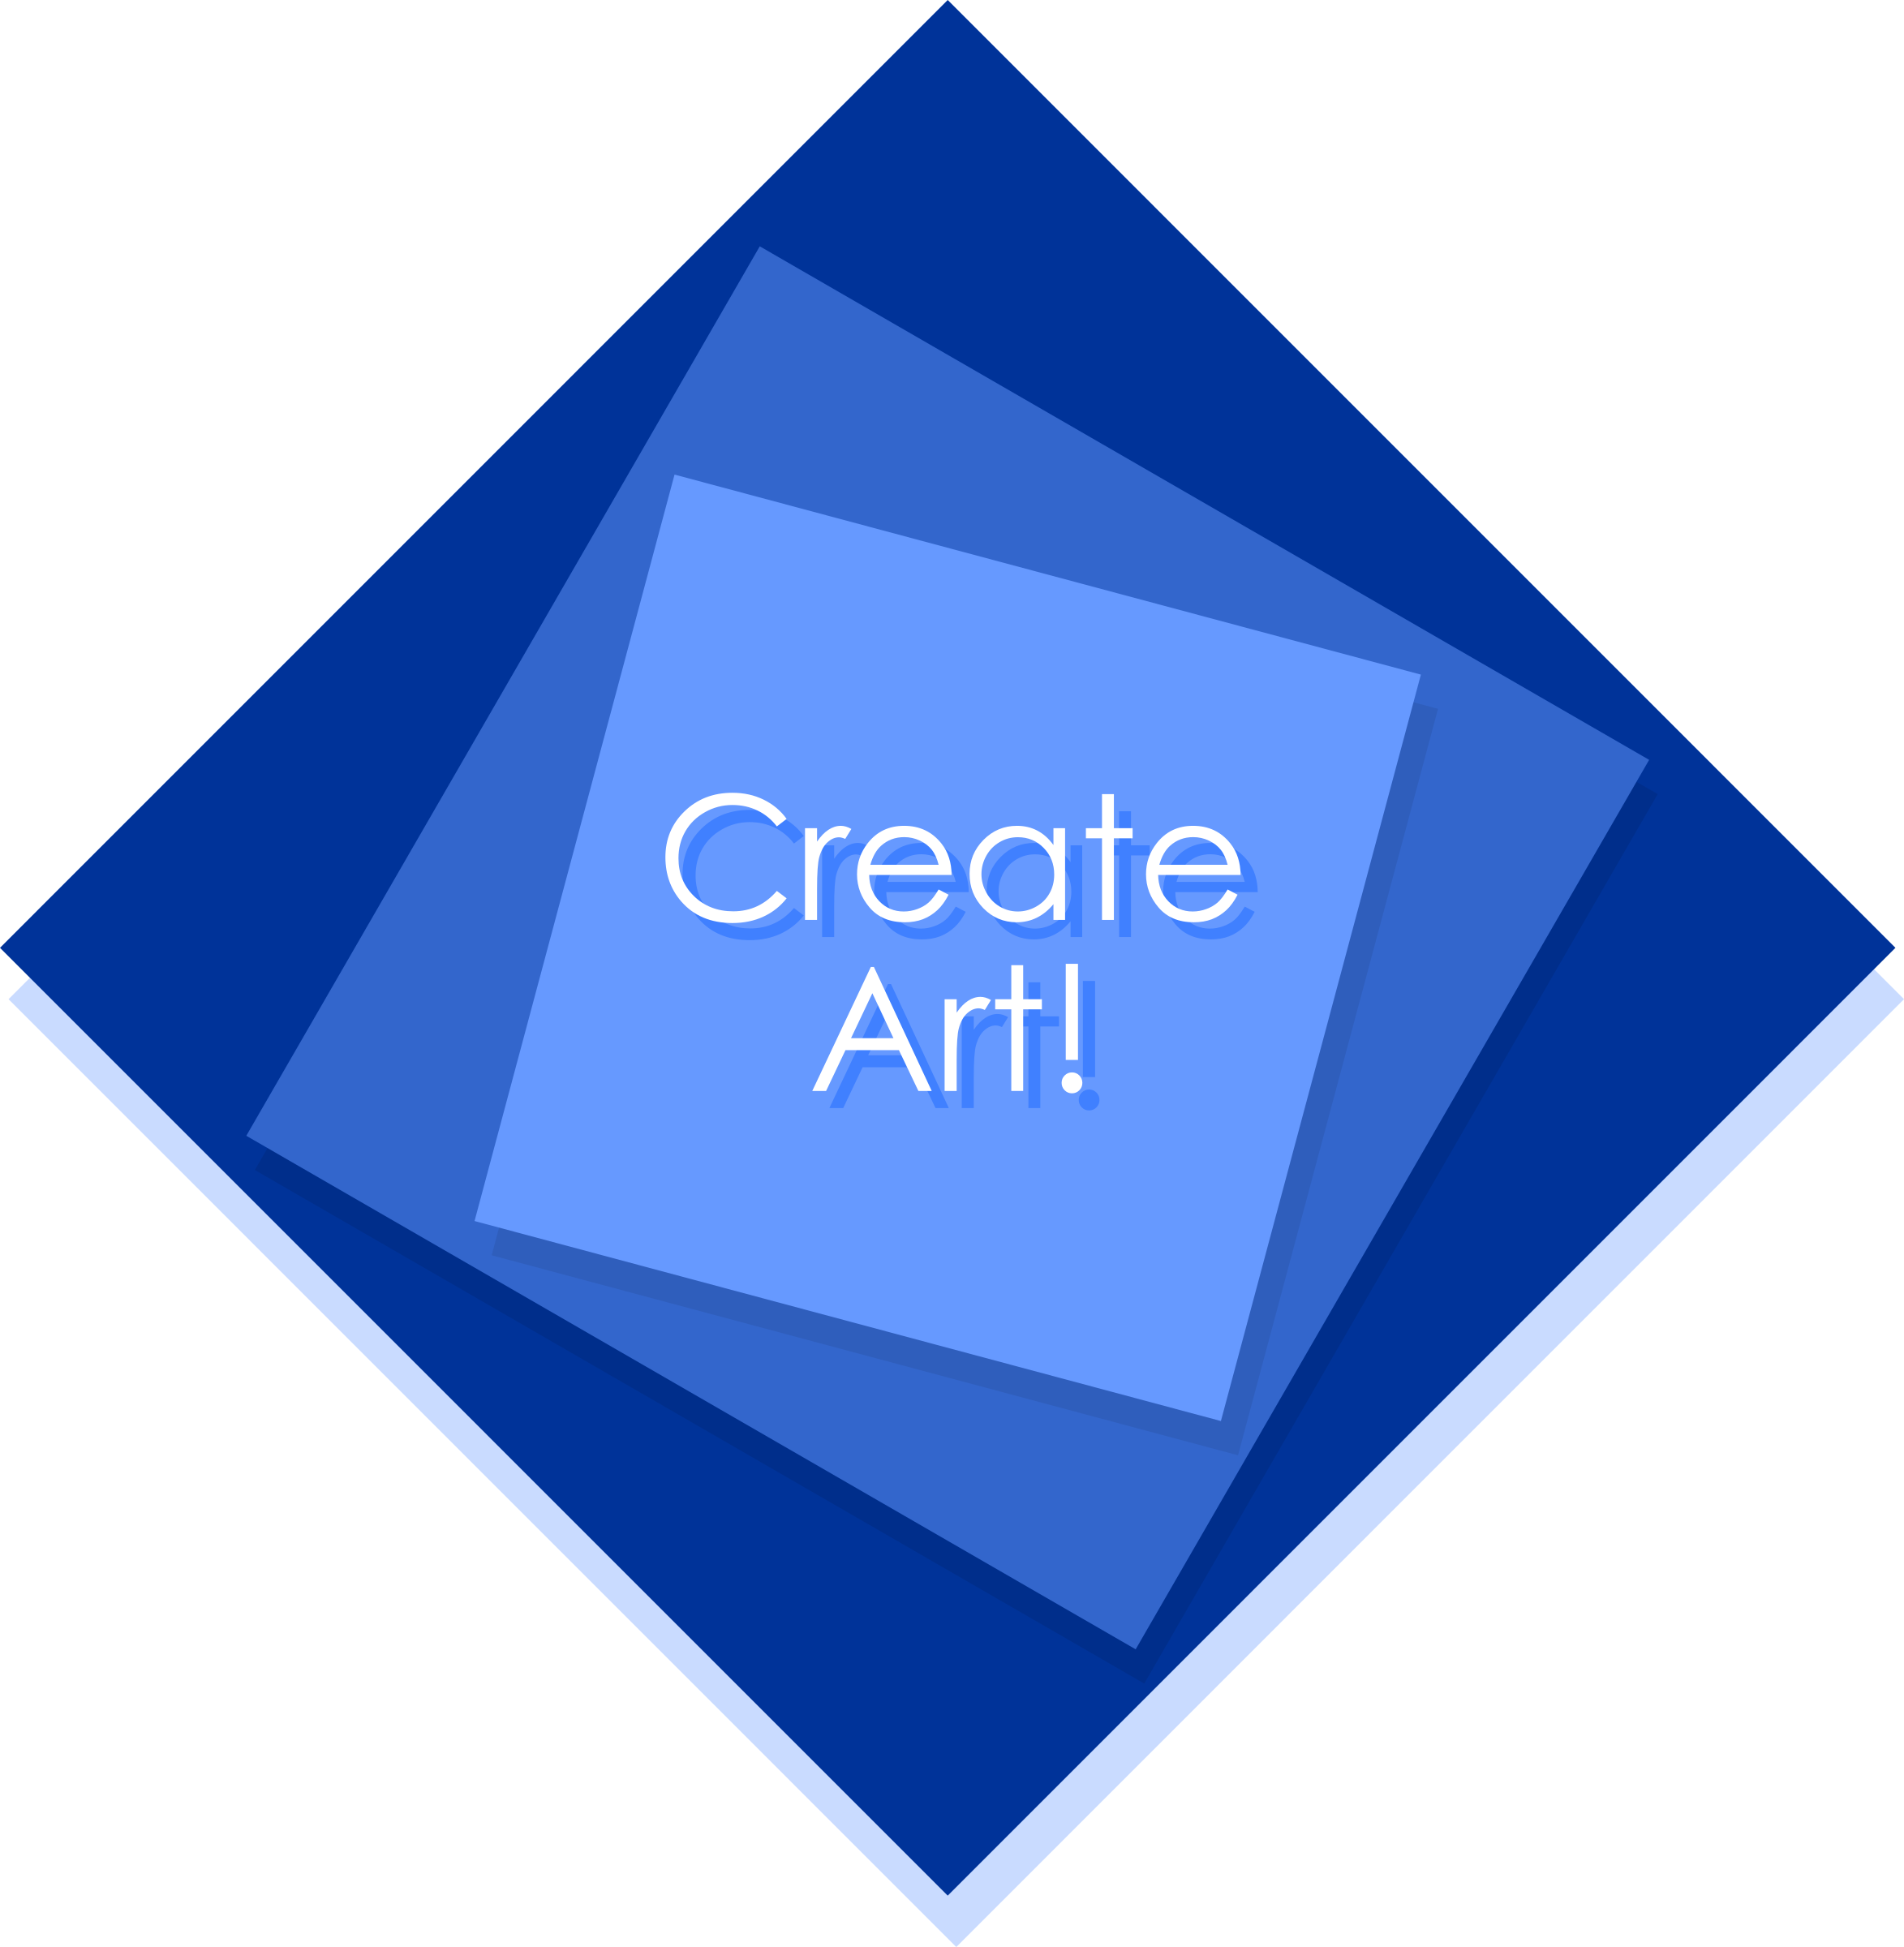 Create art logo squares generic by monsterbraingames